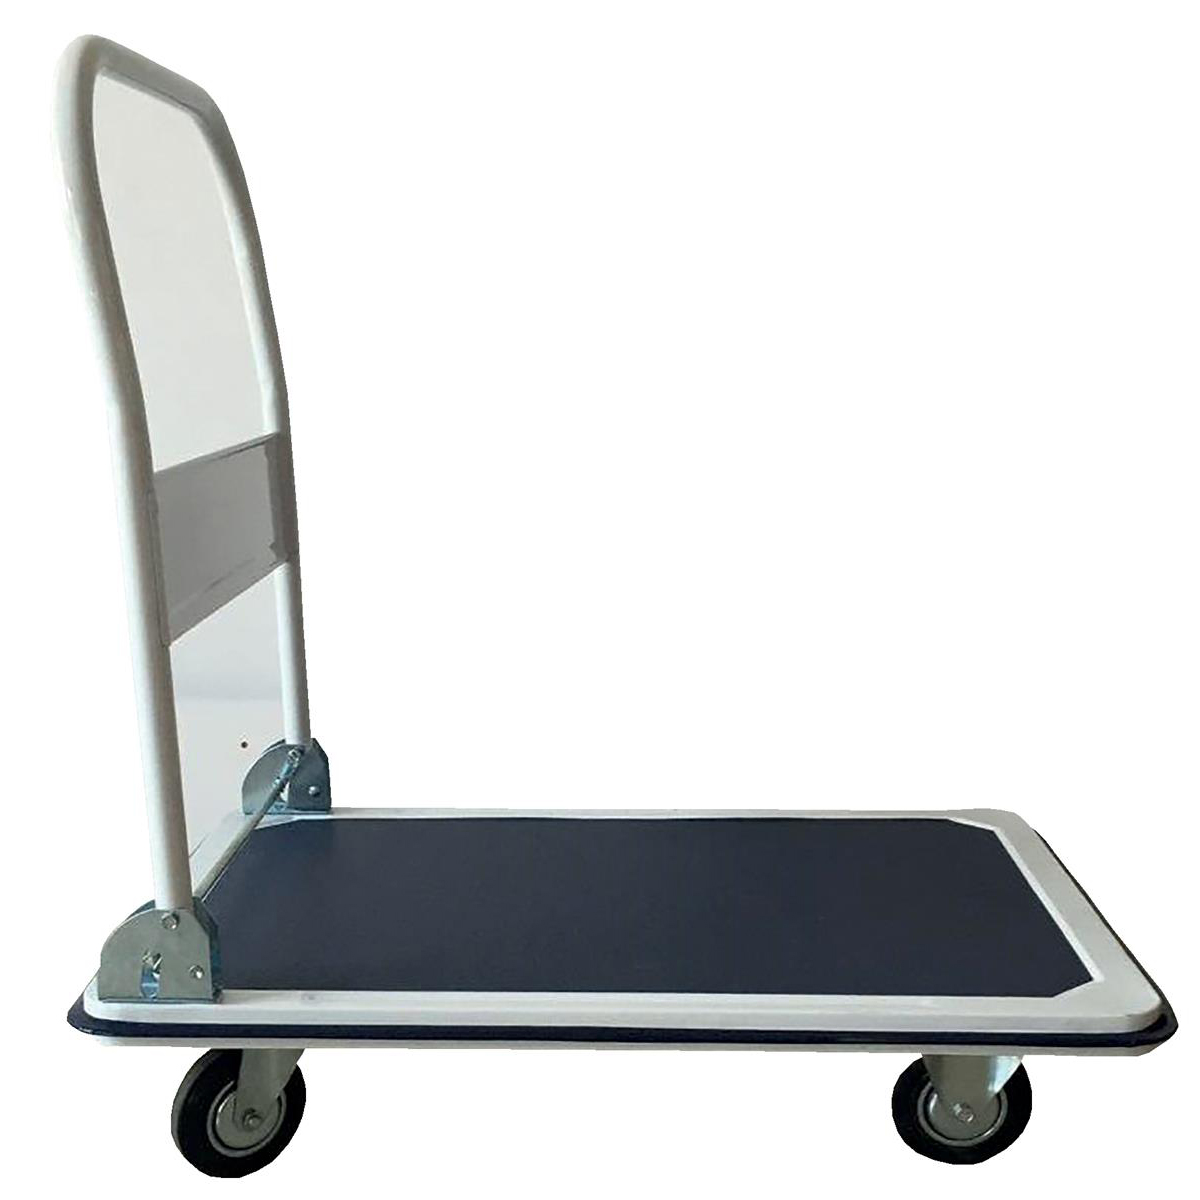 5 Star Facilities Platform Truck Medium-duty Capacity 300kg Baseboard W900xD600mm Blue and Grey